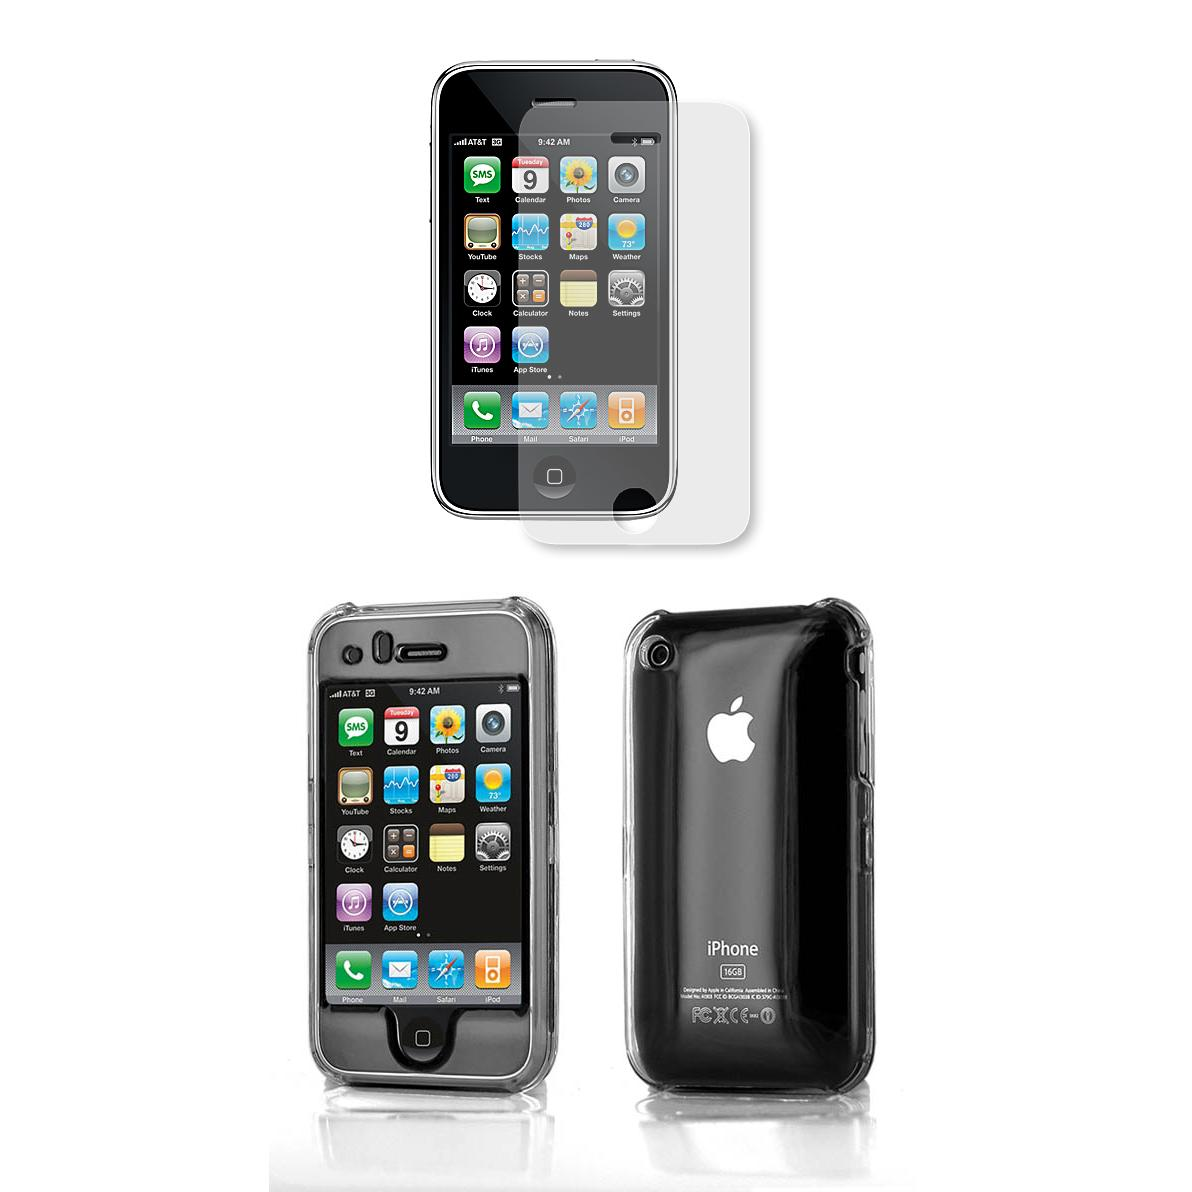 Apple iPhone 3rd Generation Protector Case with Screen Protector